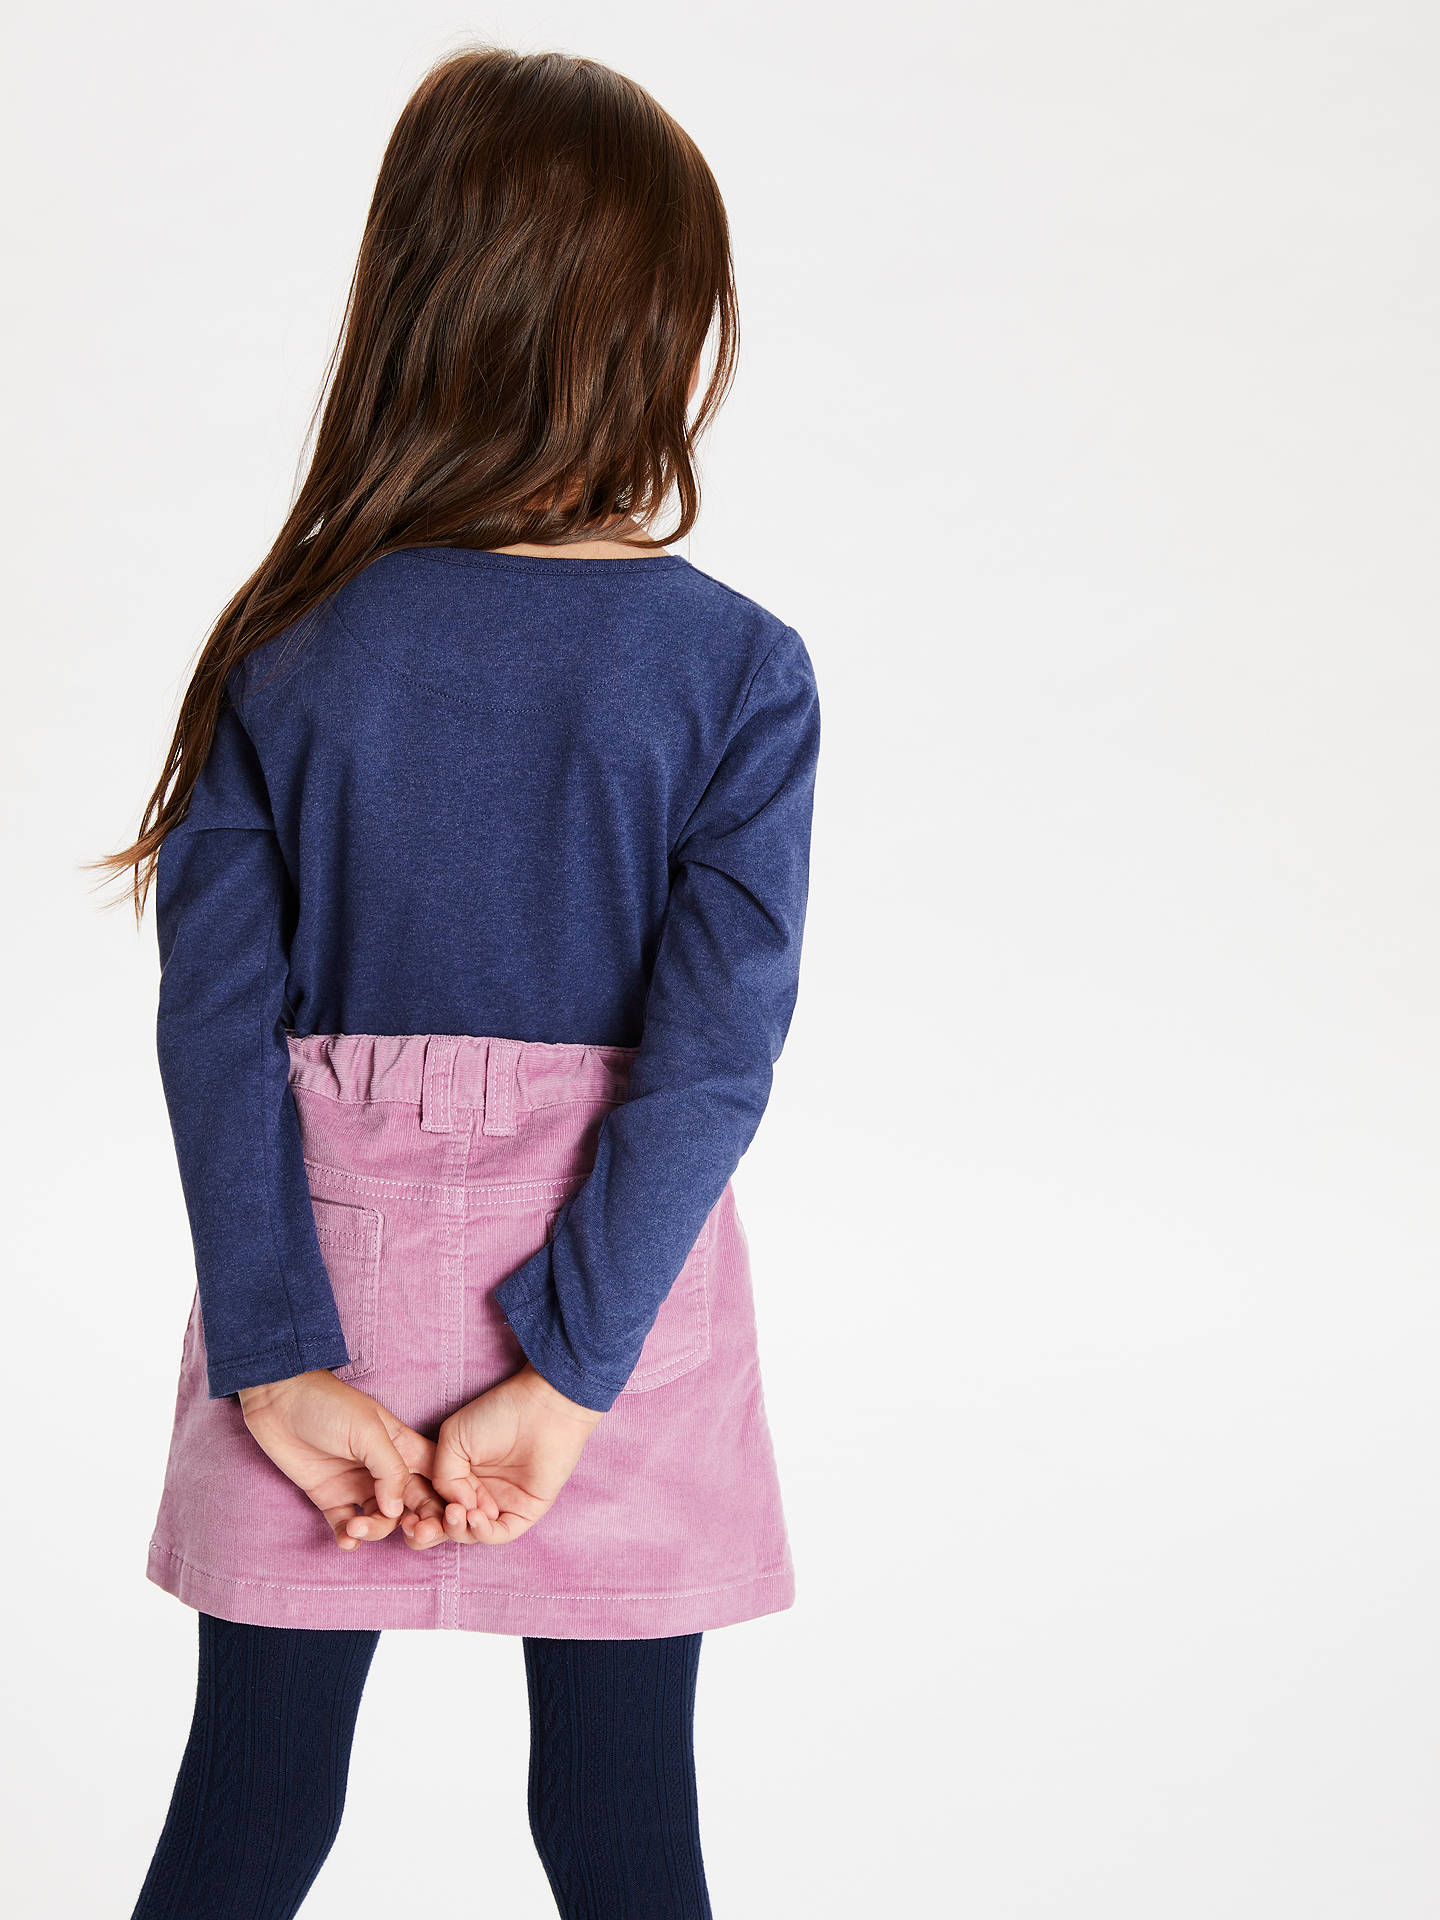 Buy John Lewis & Partners Girls' Long Sleeve T-Shirts, Pack of 3, Purple/Blue, 2 years Online at johnlewis.com